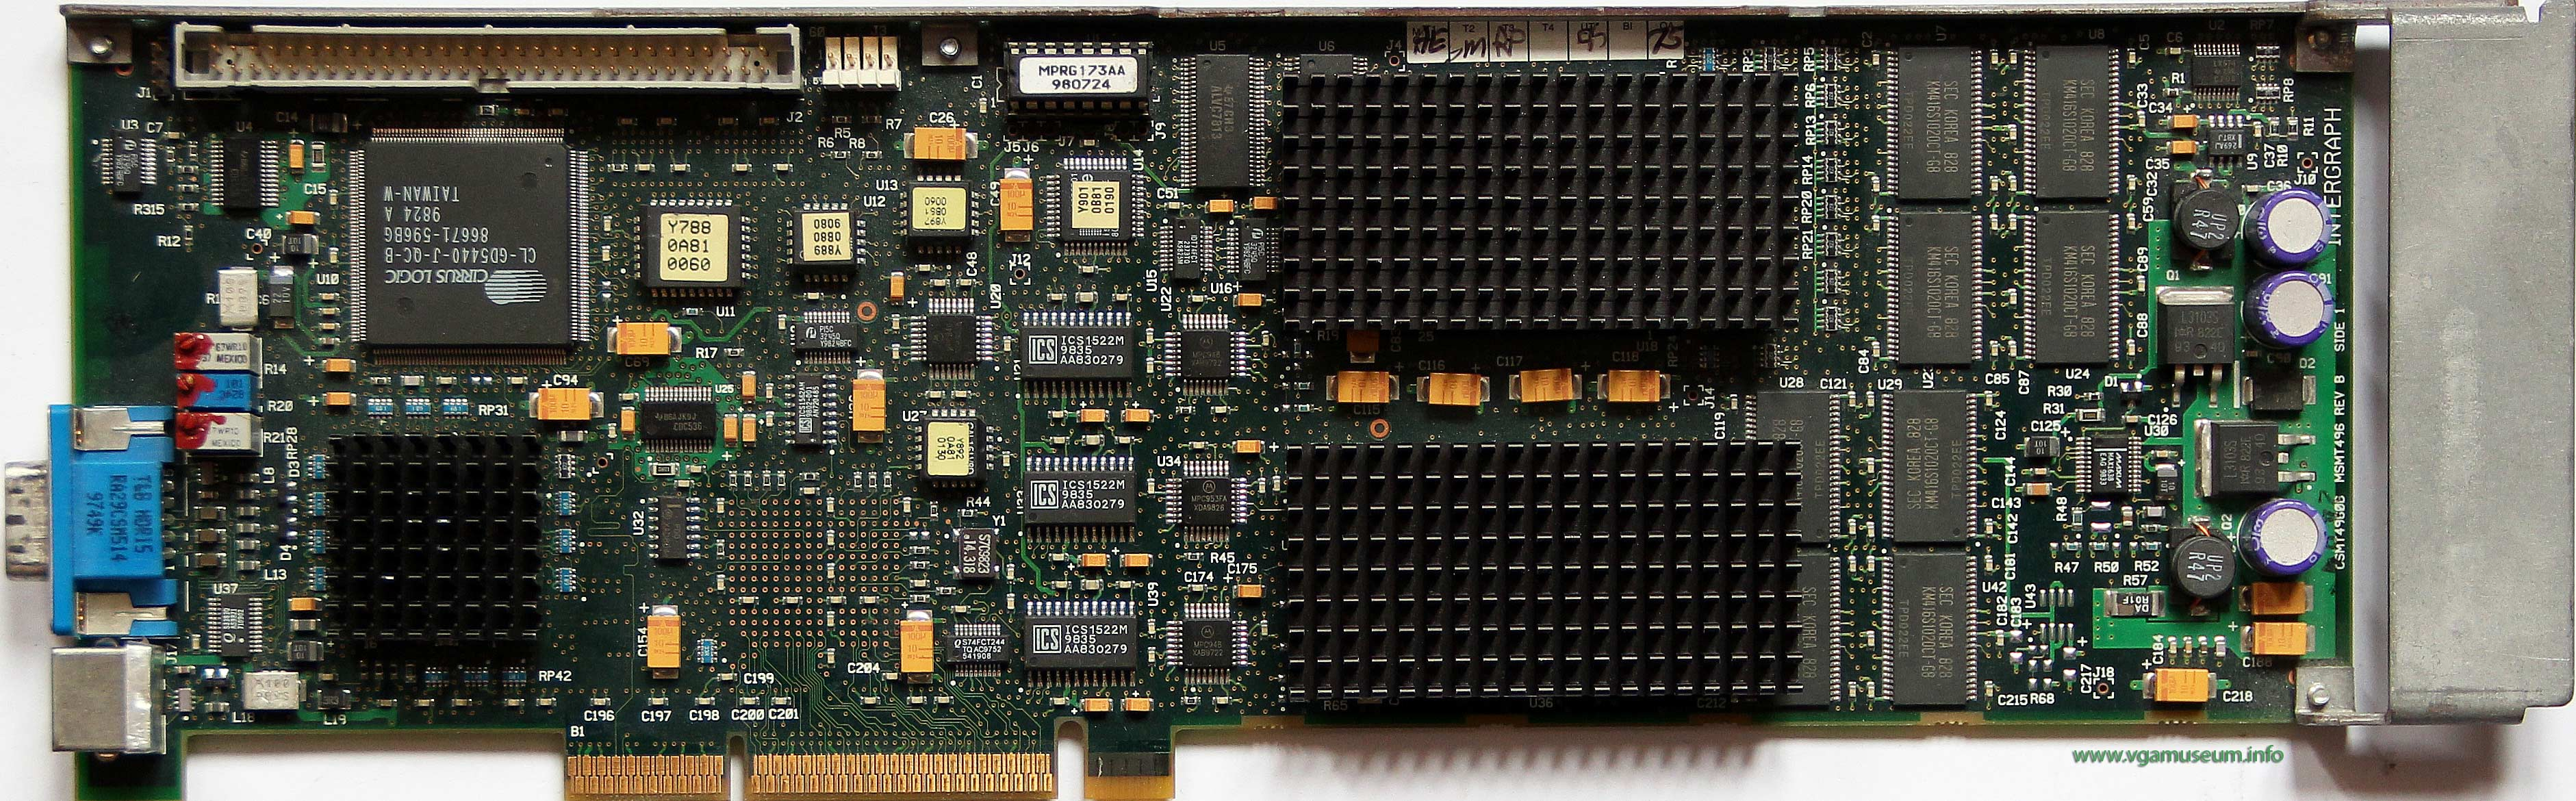 Vga Legacy Mkiii Search Results For Fuji Pci 256 Mb Ddr2 8400gs 8300gs Intergraph Intense 3d Pro 3410 Msmt496